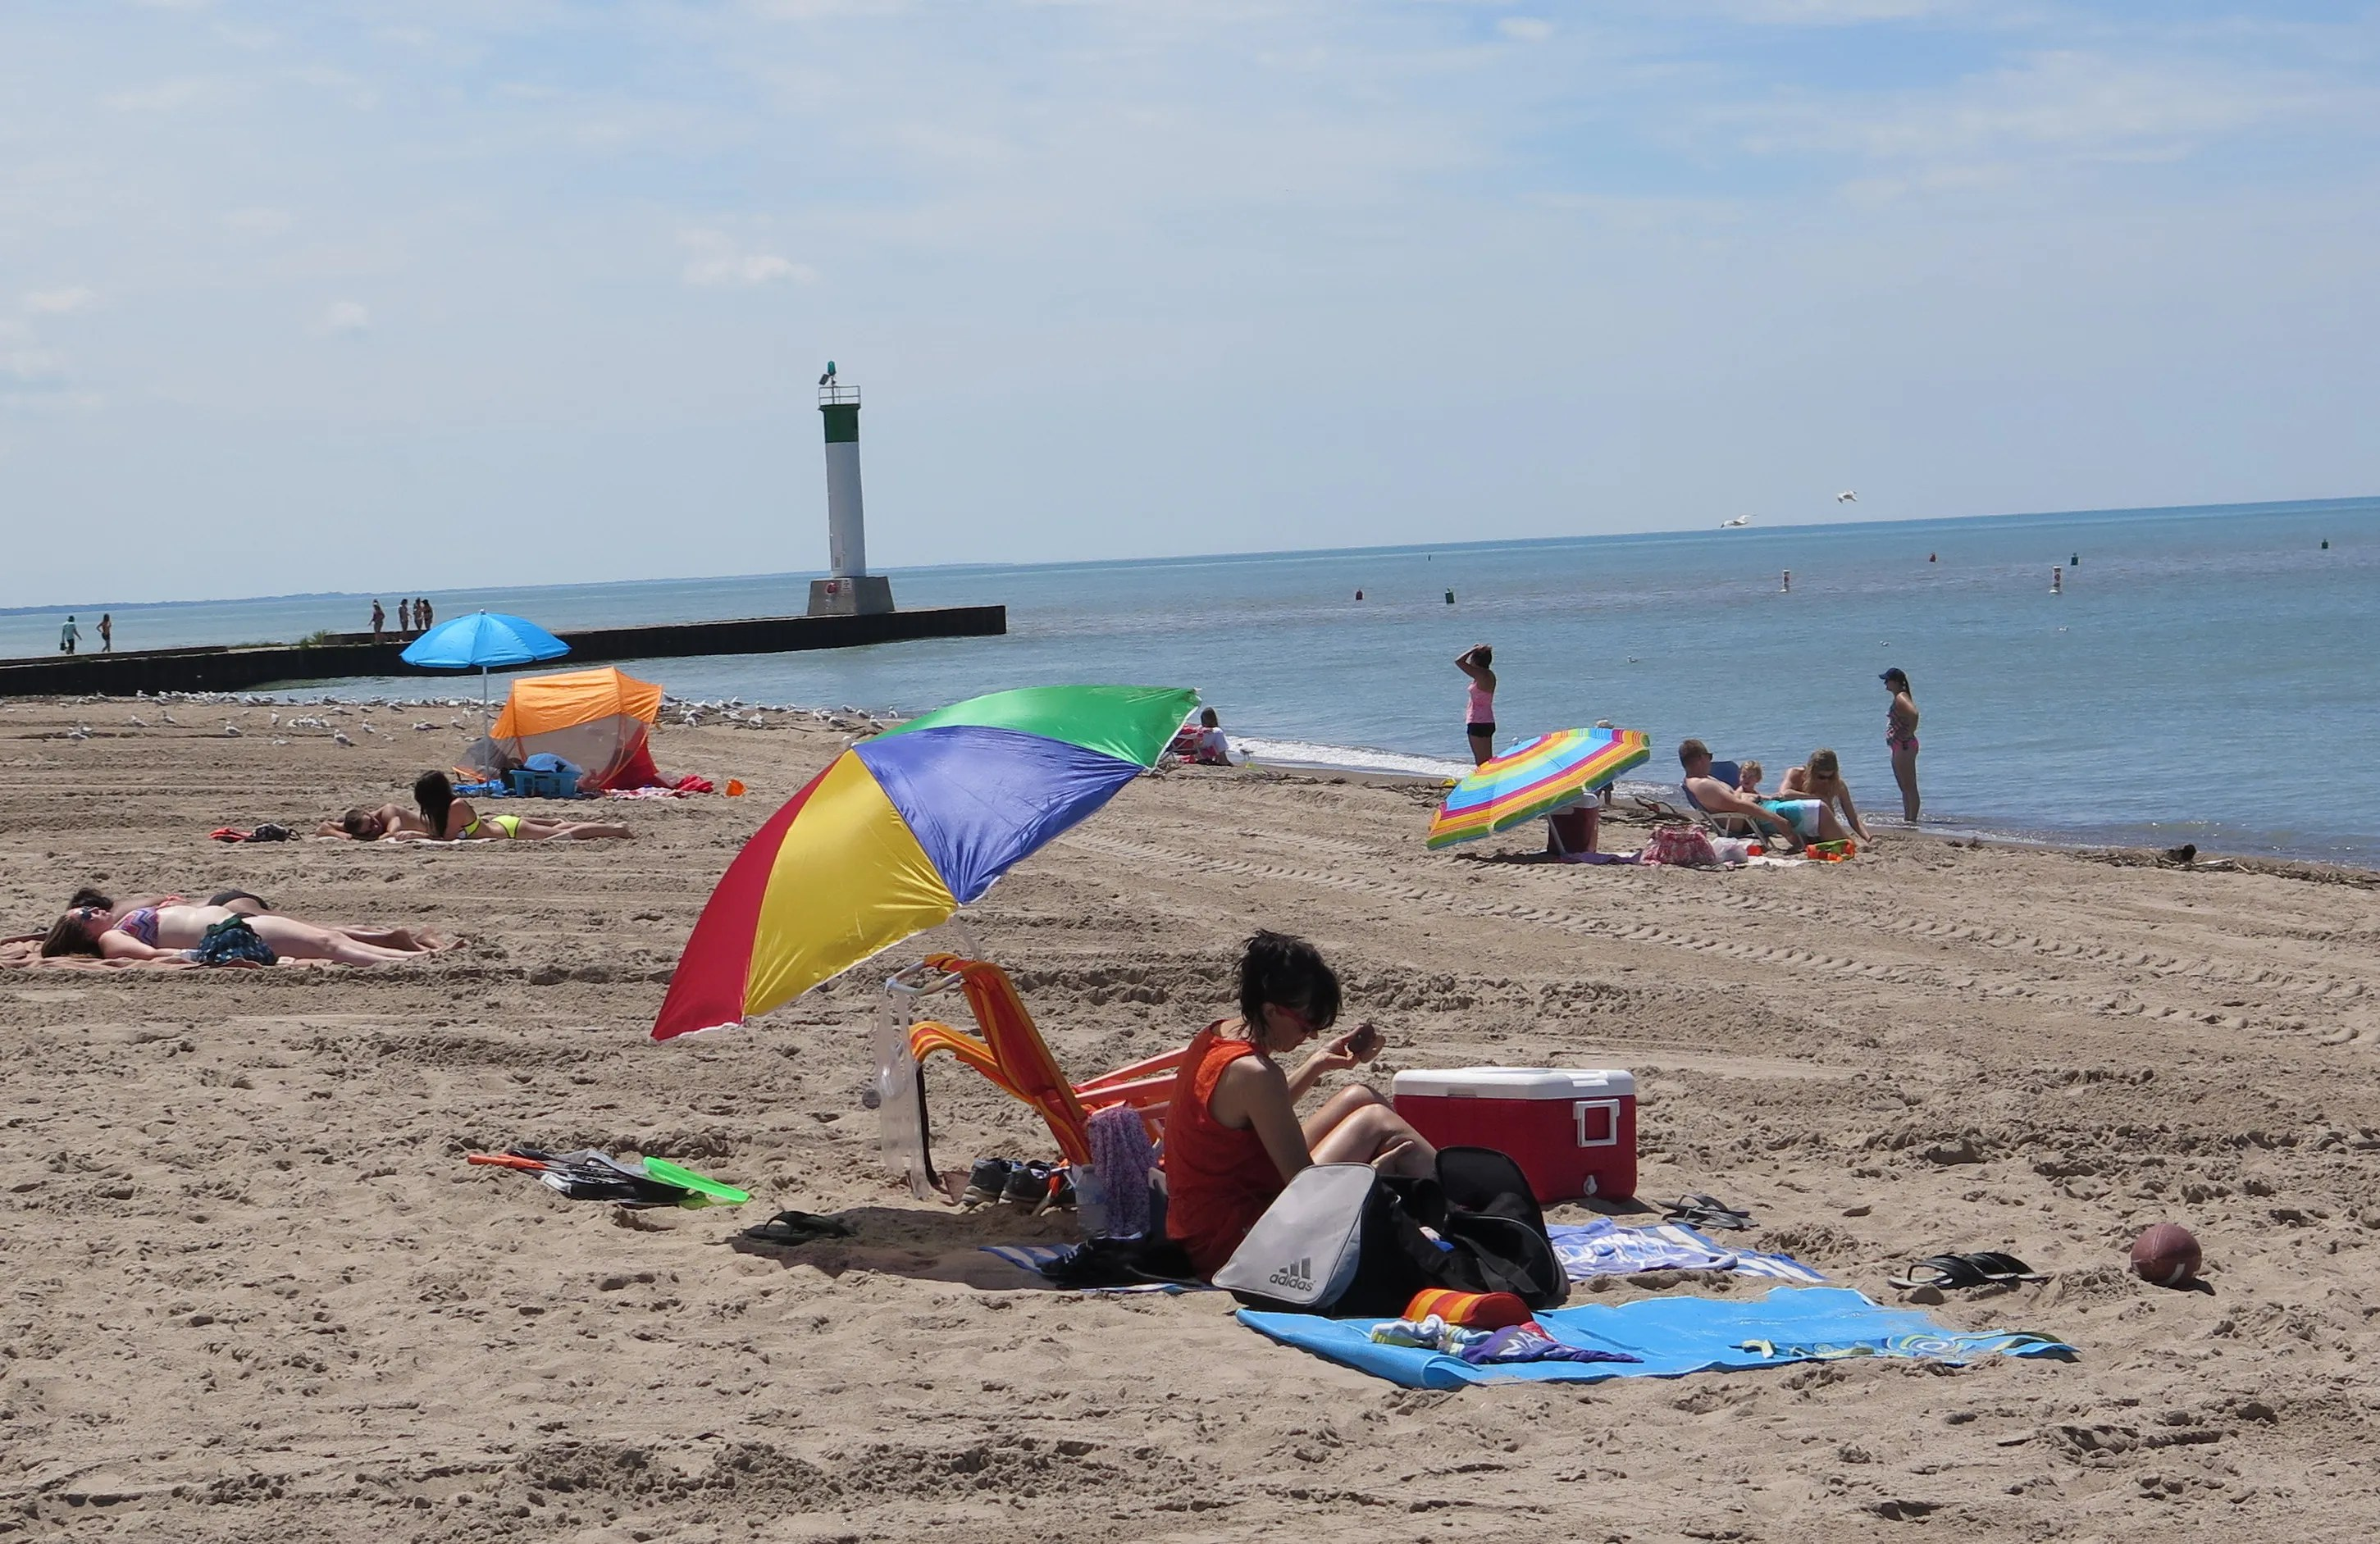 There's nothing quite like a day at the beach, and Grand Bend has one of the best around.  JIM BYERS PHOTO